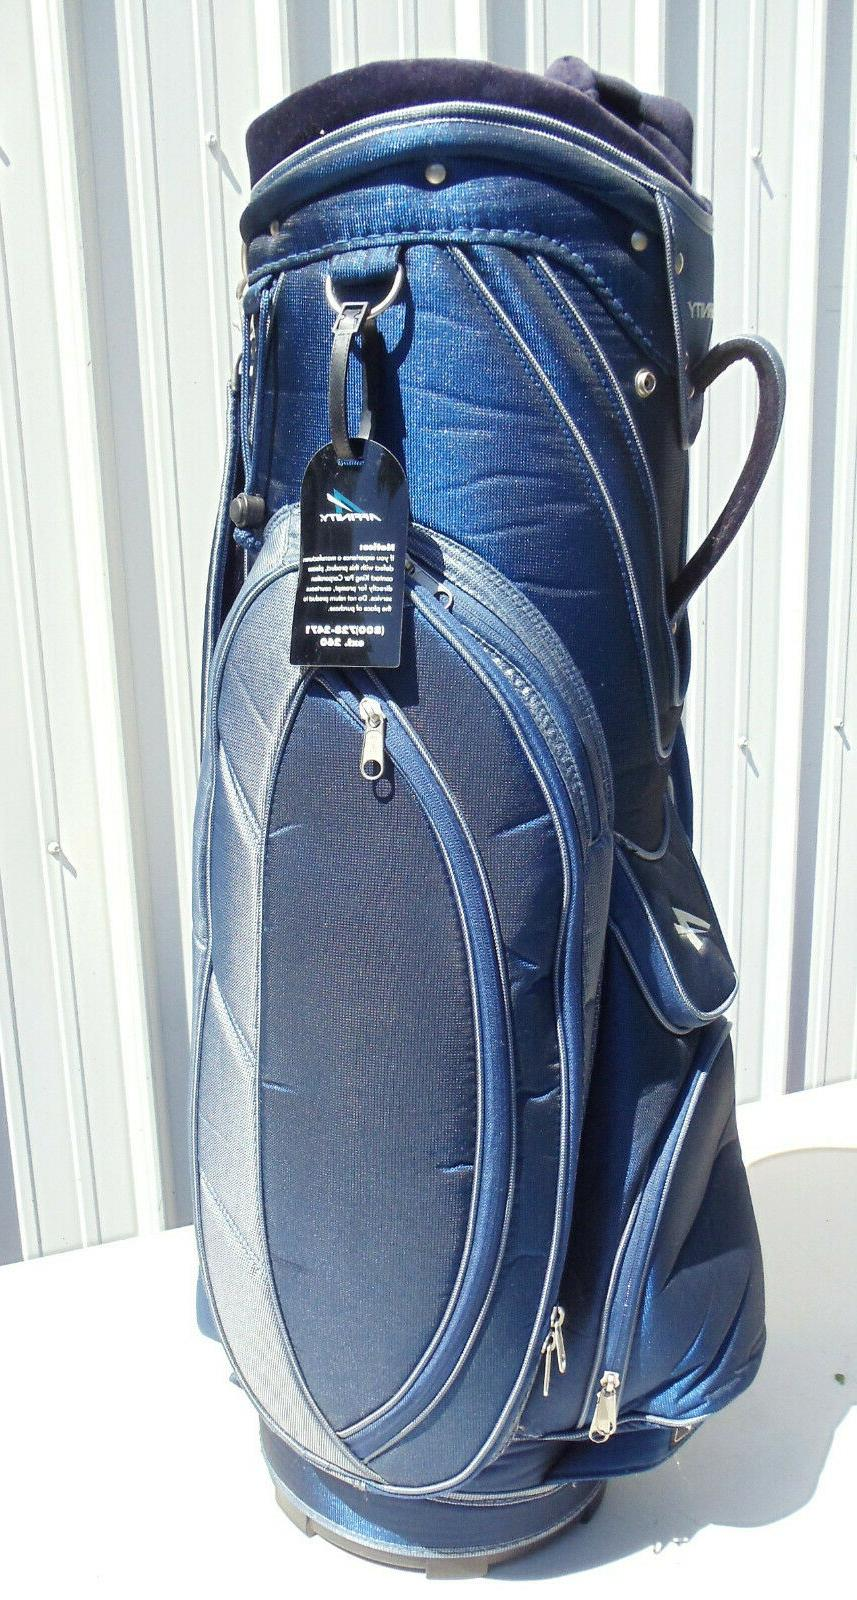 Ladies Cart Bag with and